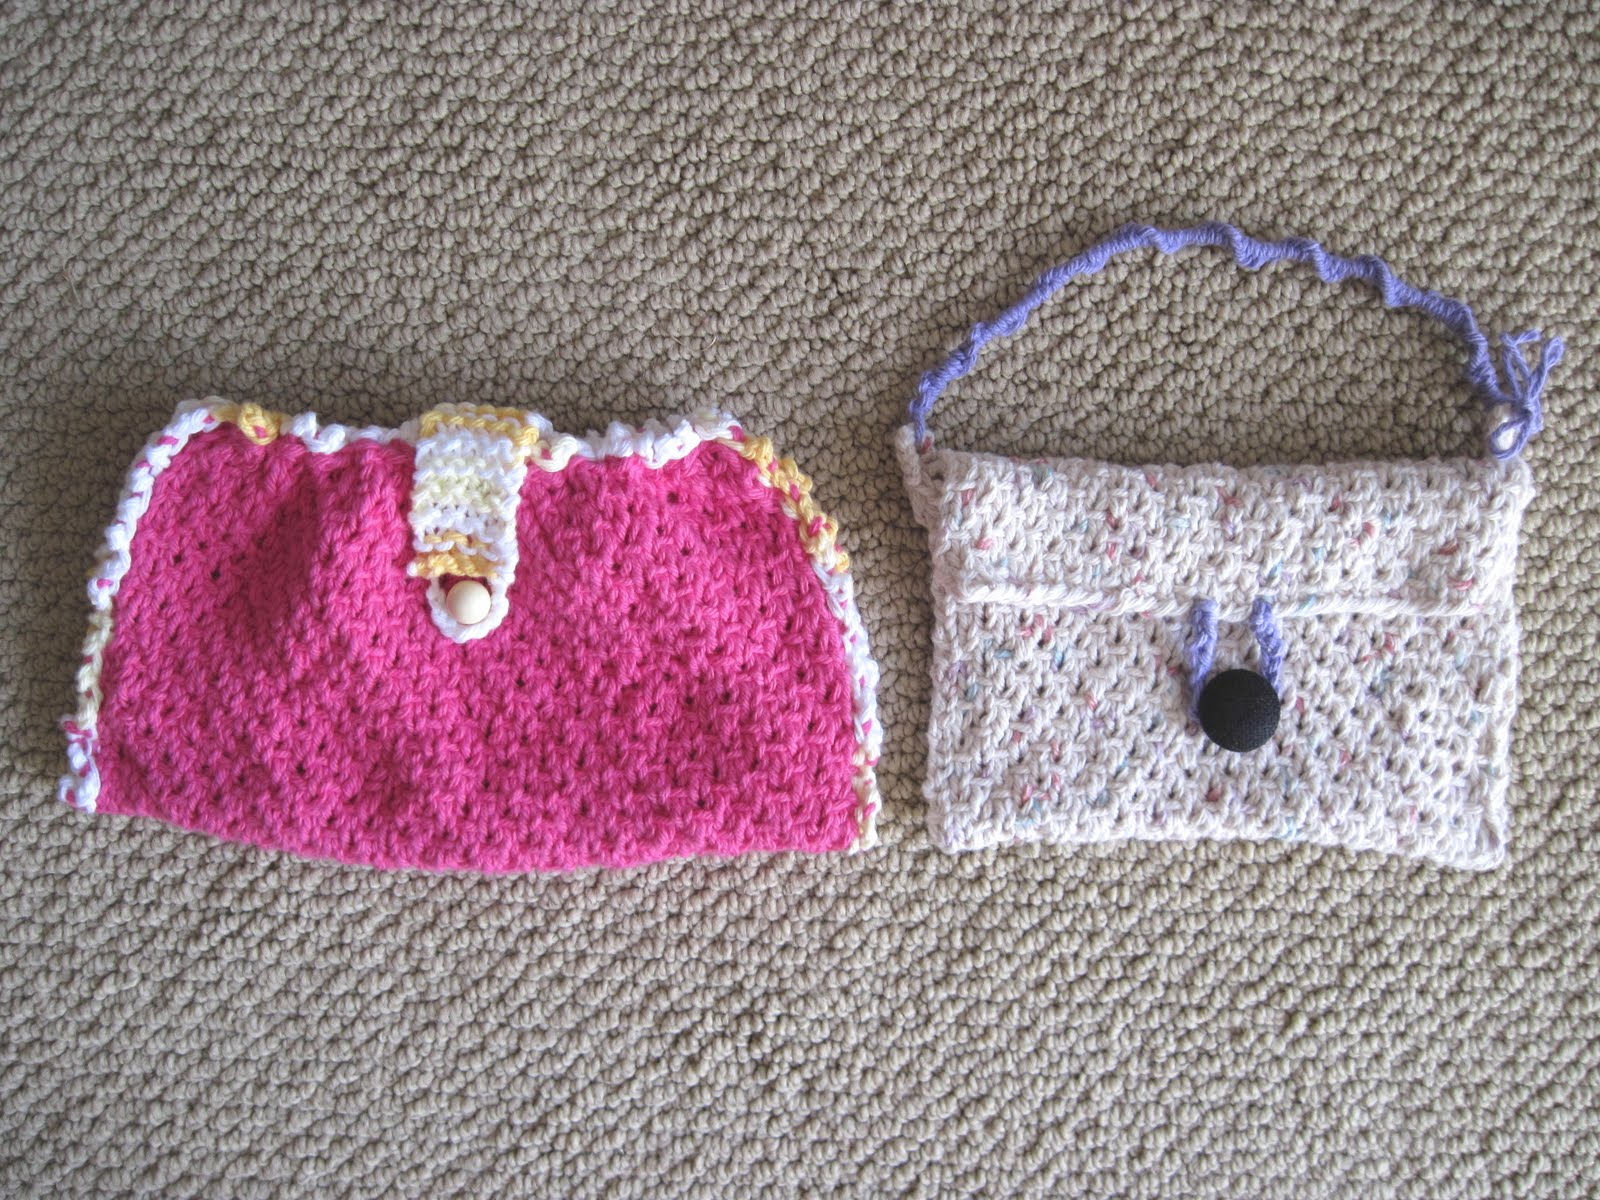 Knitted Bag Patterns For Beginners : little knitted bags another kind of needlin around i do is knitting ...